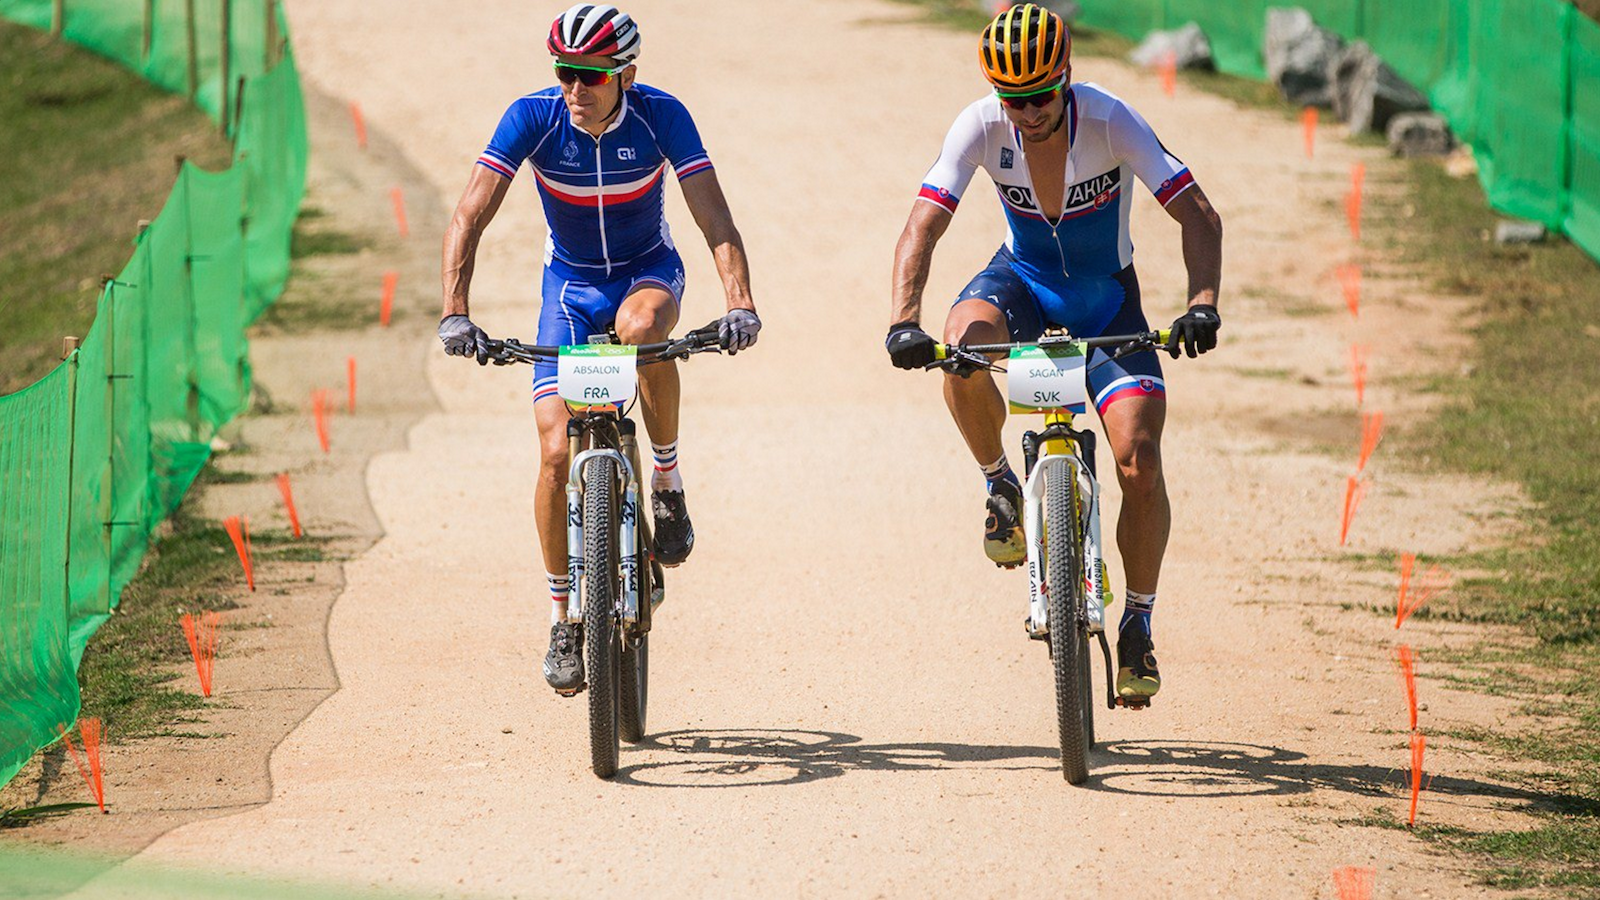 Two-time Olympic champion Julien Absalon (France) and Peter Sagan (Slovakia), the current world road champion and winner of the Points Jersey at the Tour de France, who decided to race mountain bike rather than road at the 2016 Olympics. Photo: UCI/Michal ?ervený.